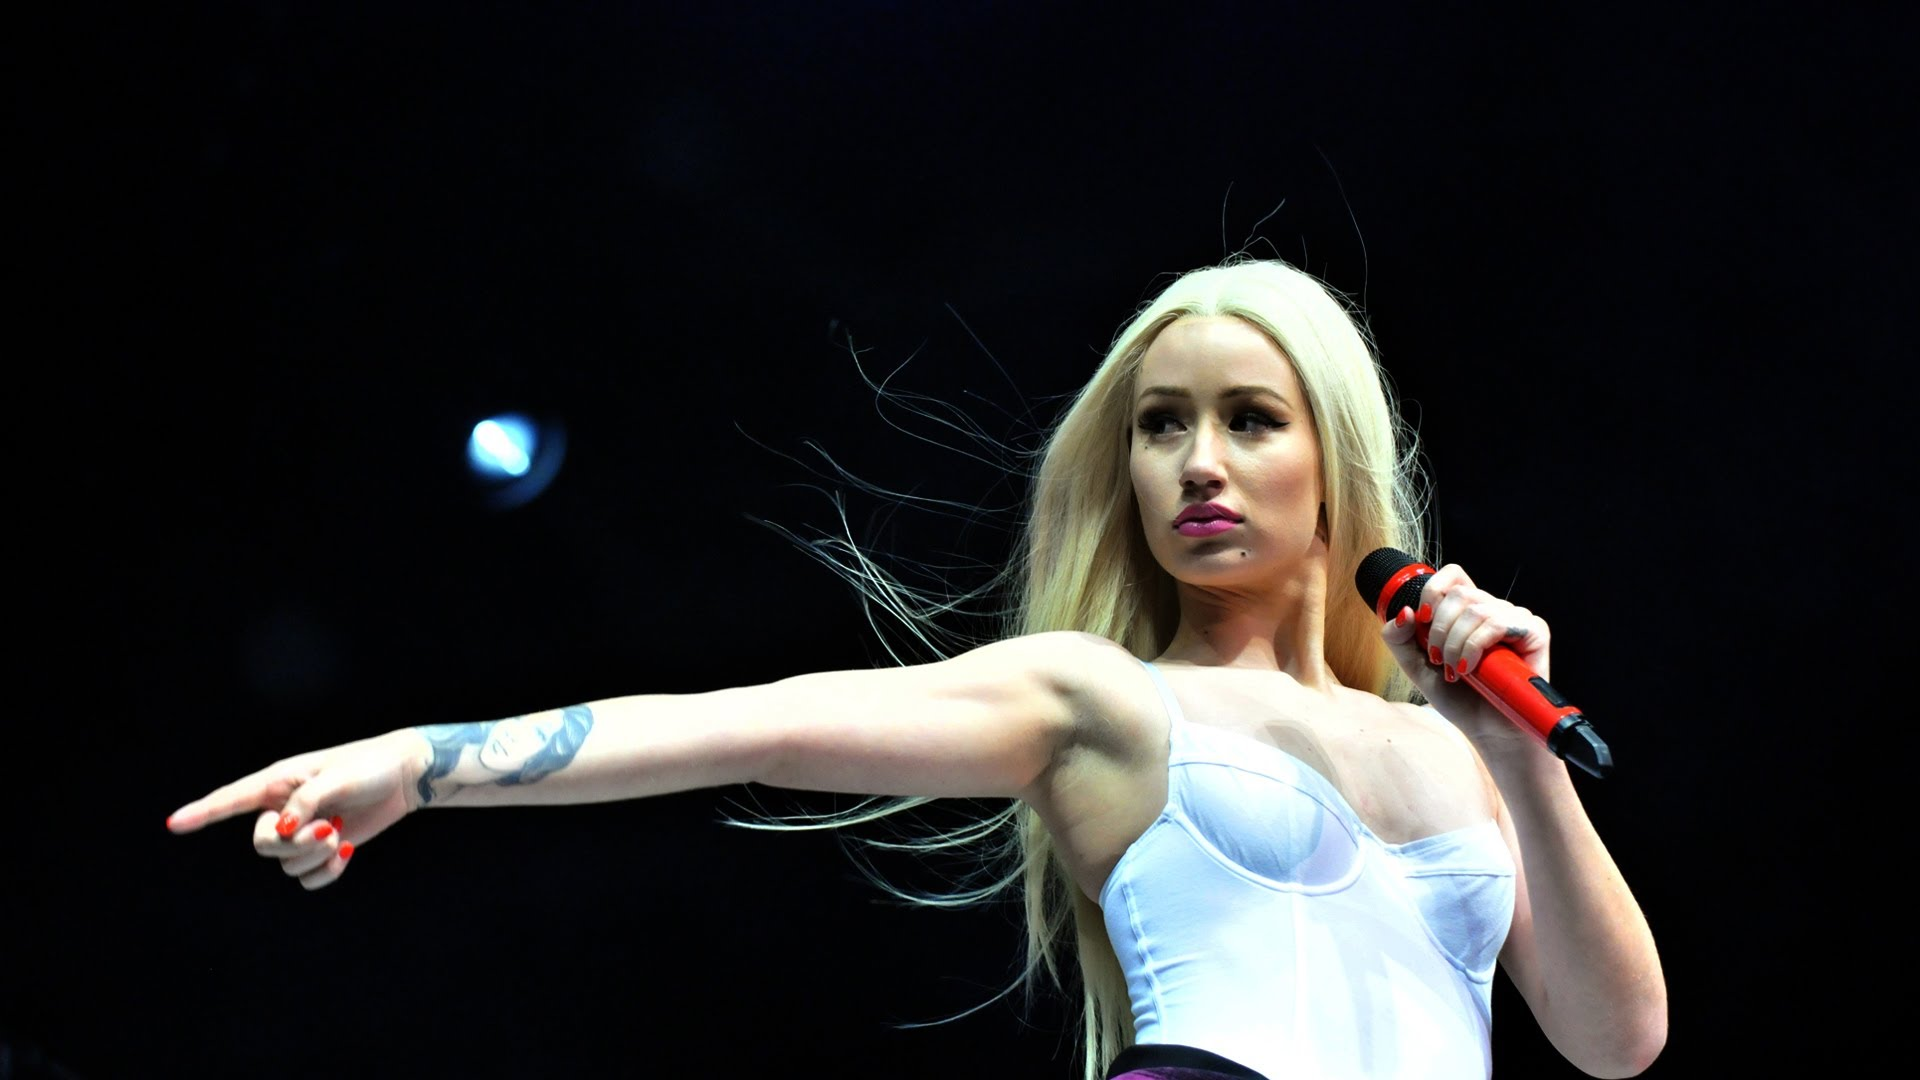 iggy azalea On Stage HD Widescreen wallpaper Wallpaper